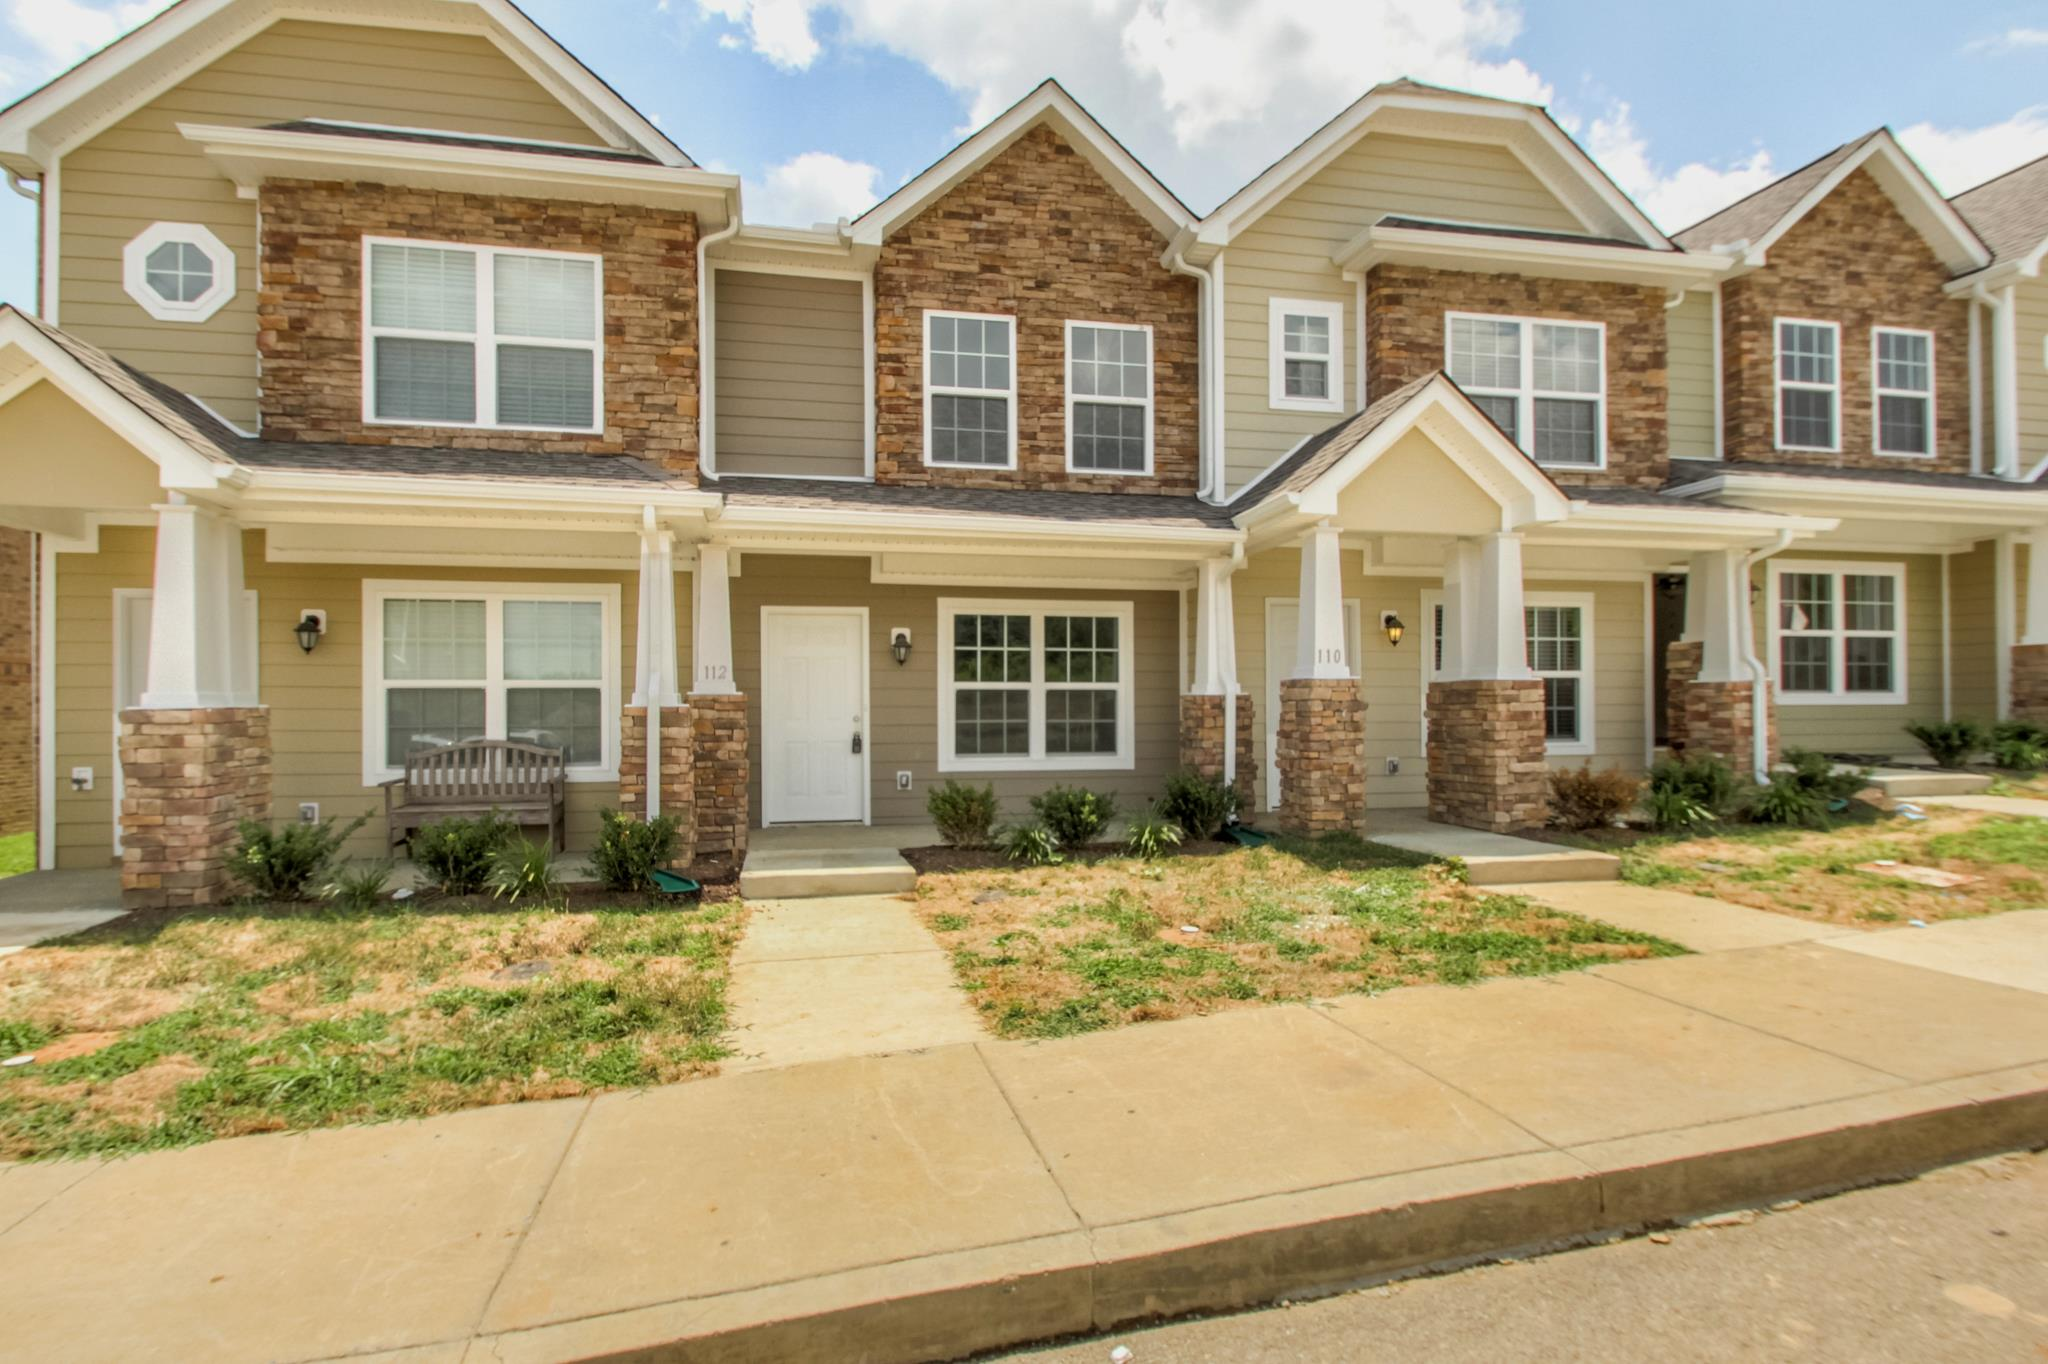 Photo of 169 Cobblestone Place Dr  Goodlettsville  TN